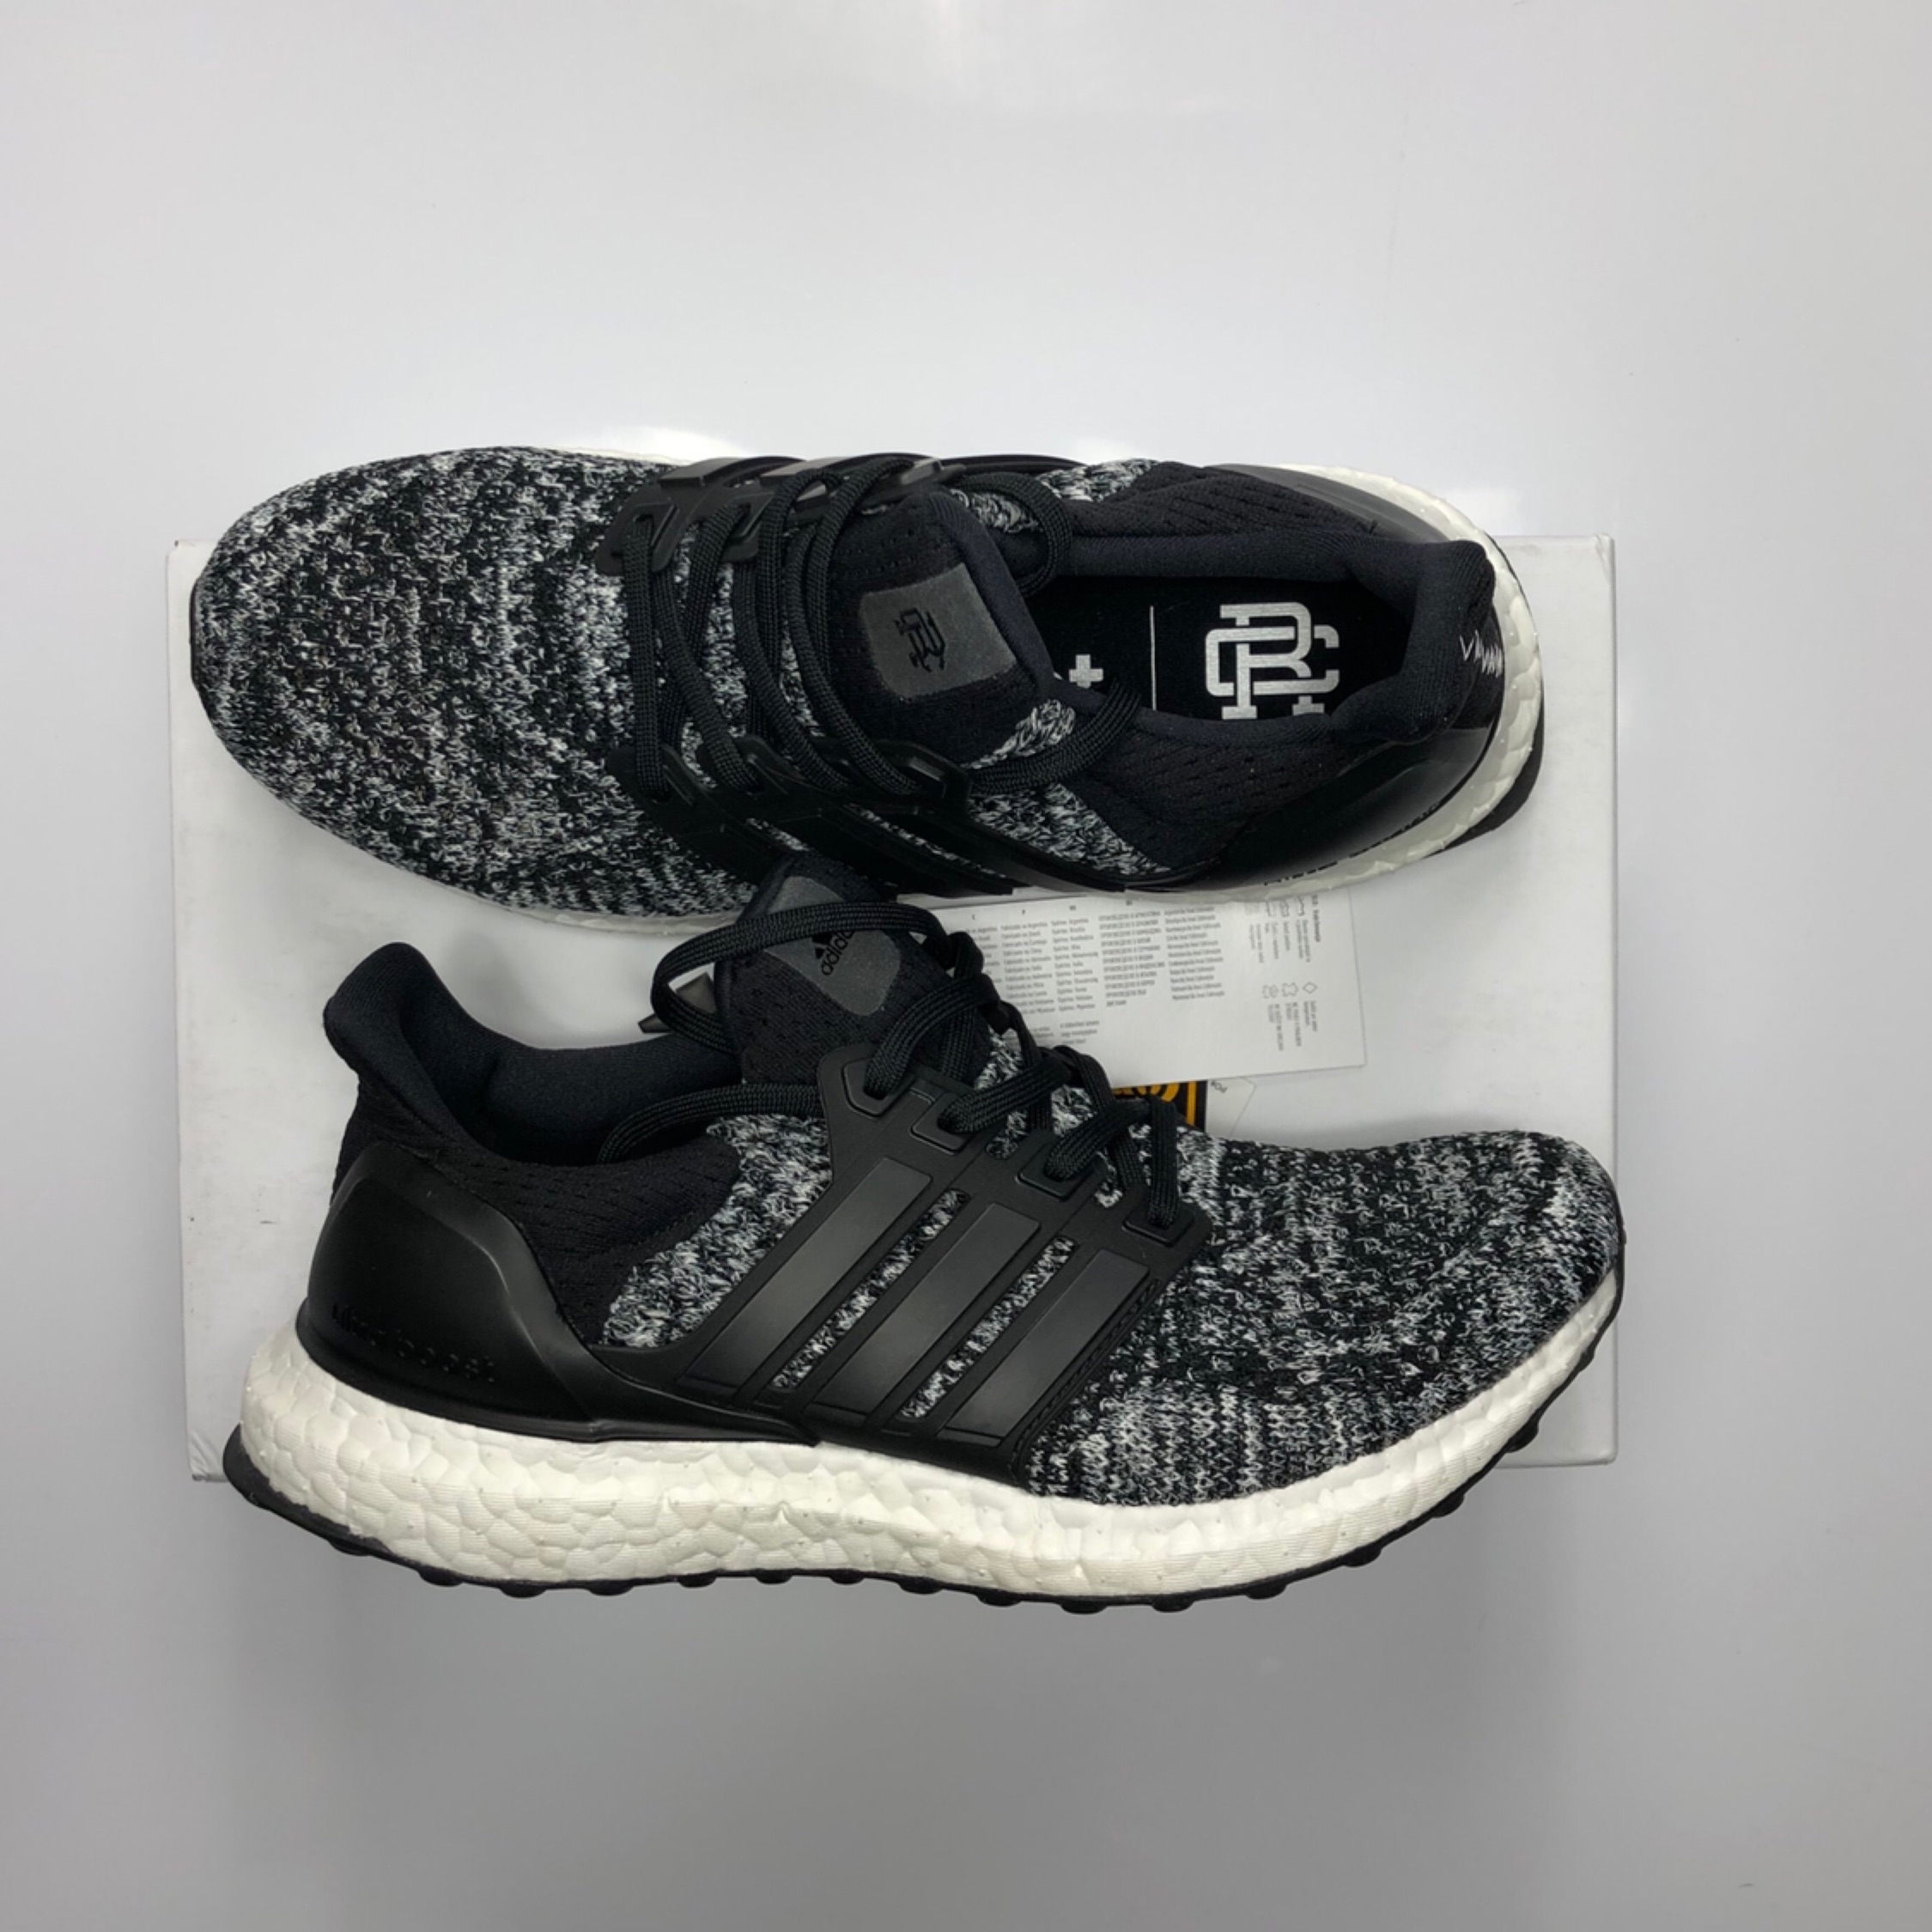 Adidas Reigning Champ Ultra Boost New Uk4.5